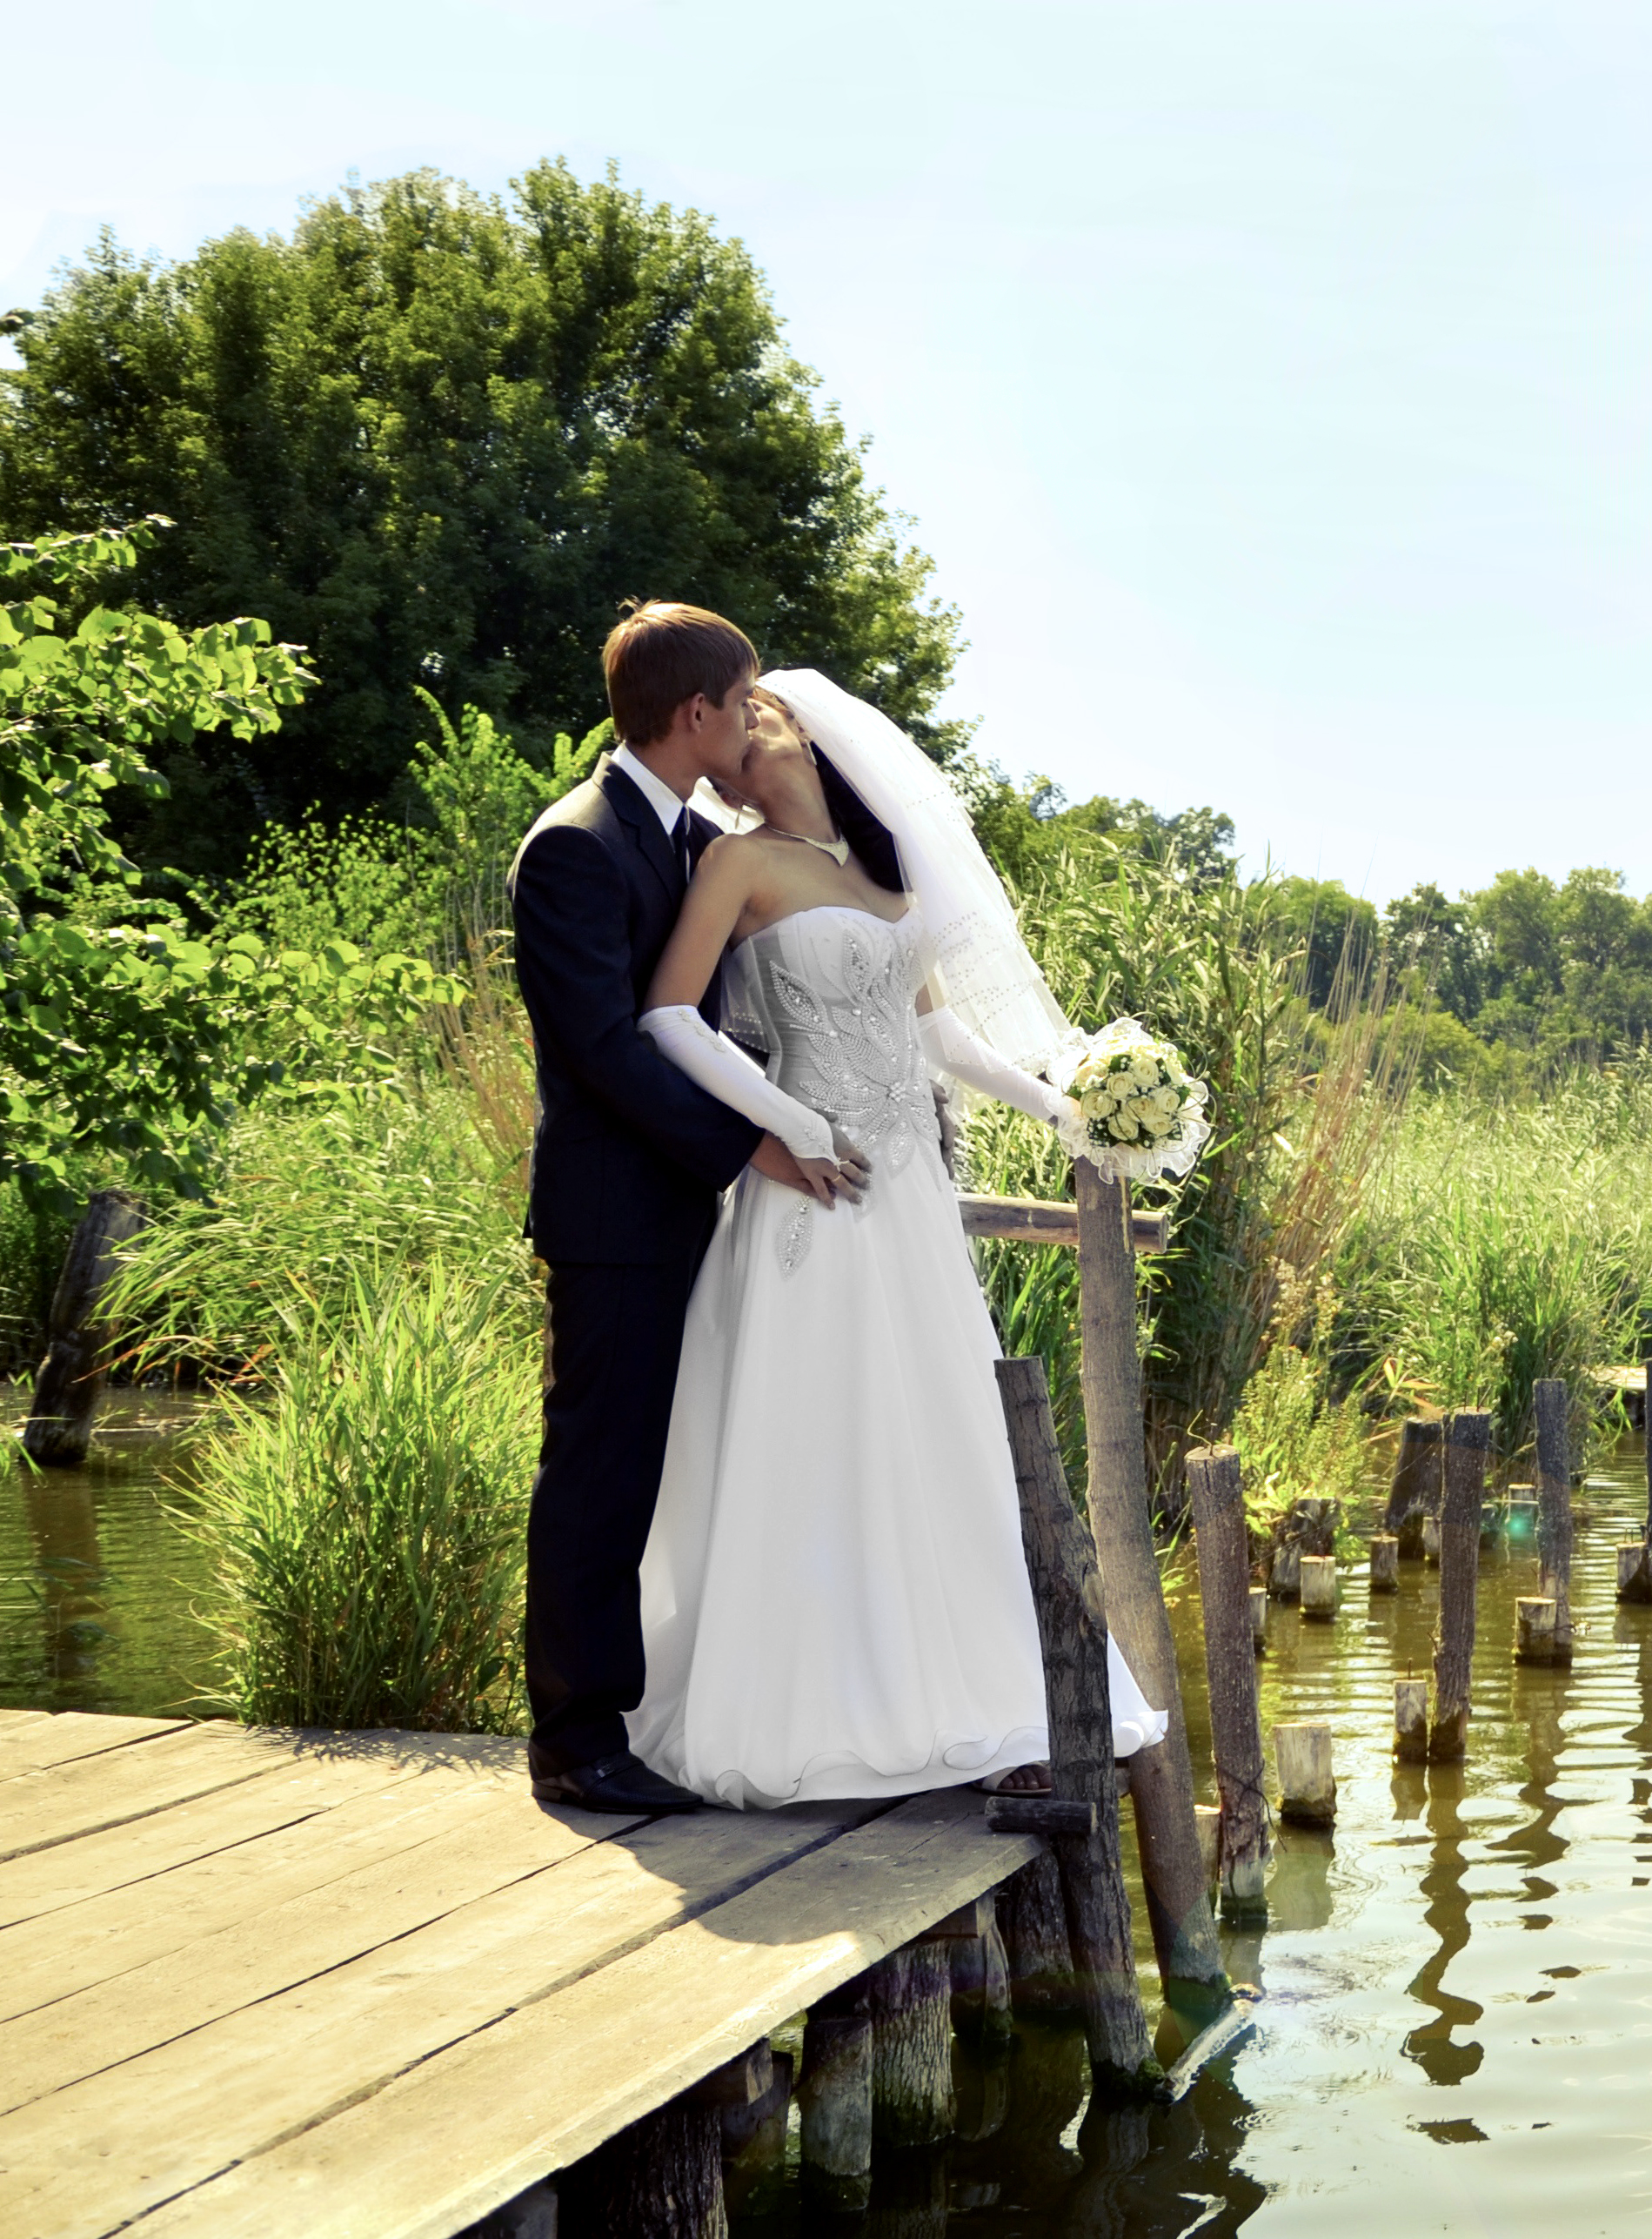 Bride and groom by the river enhanced